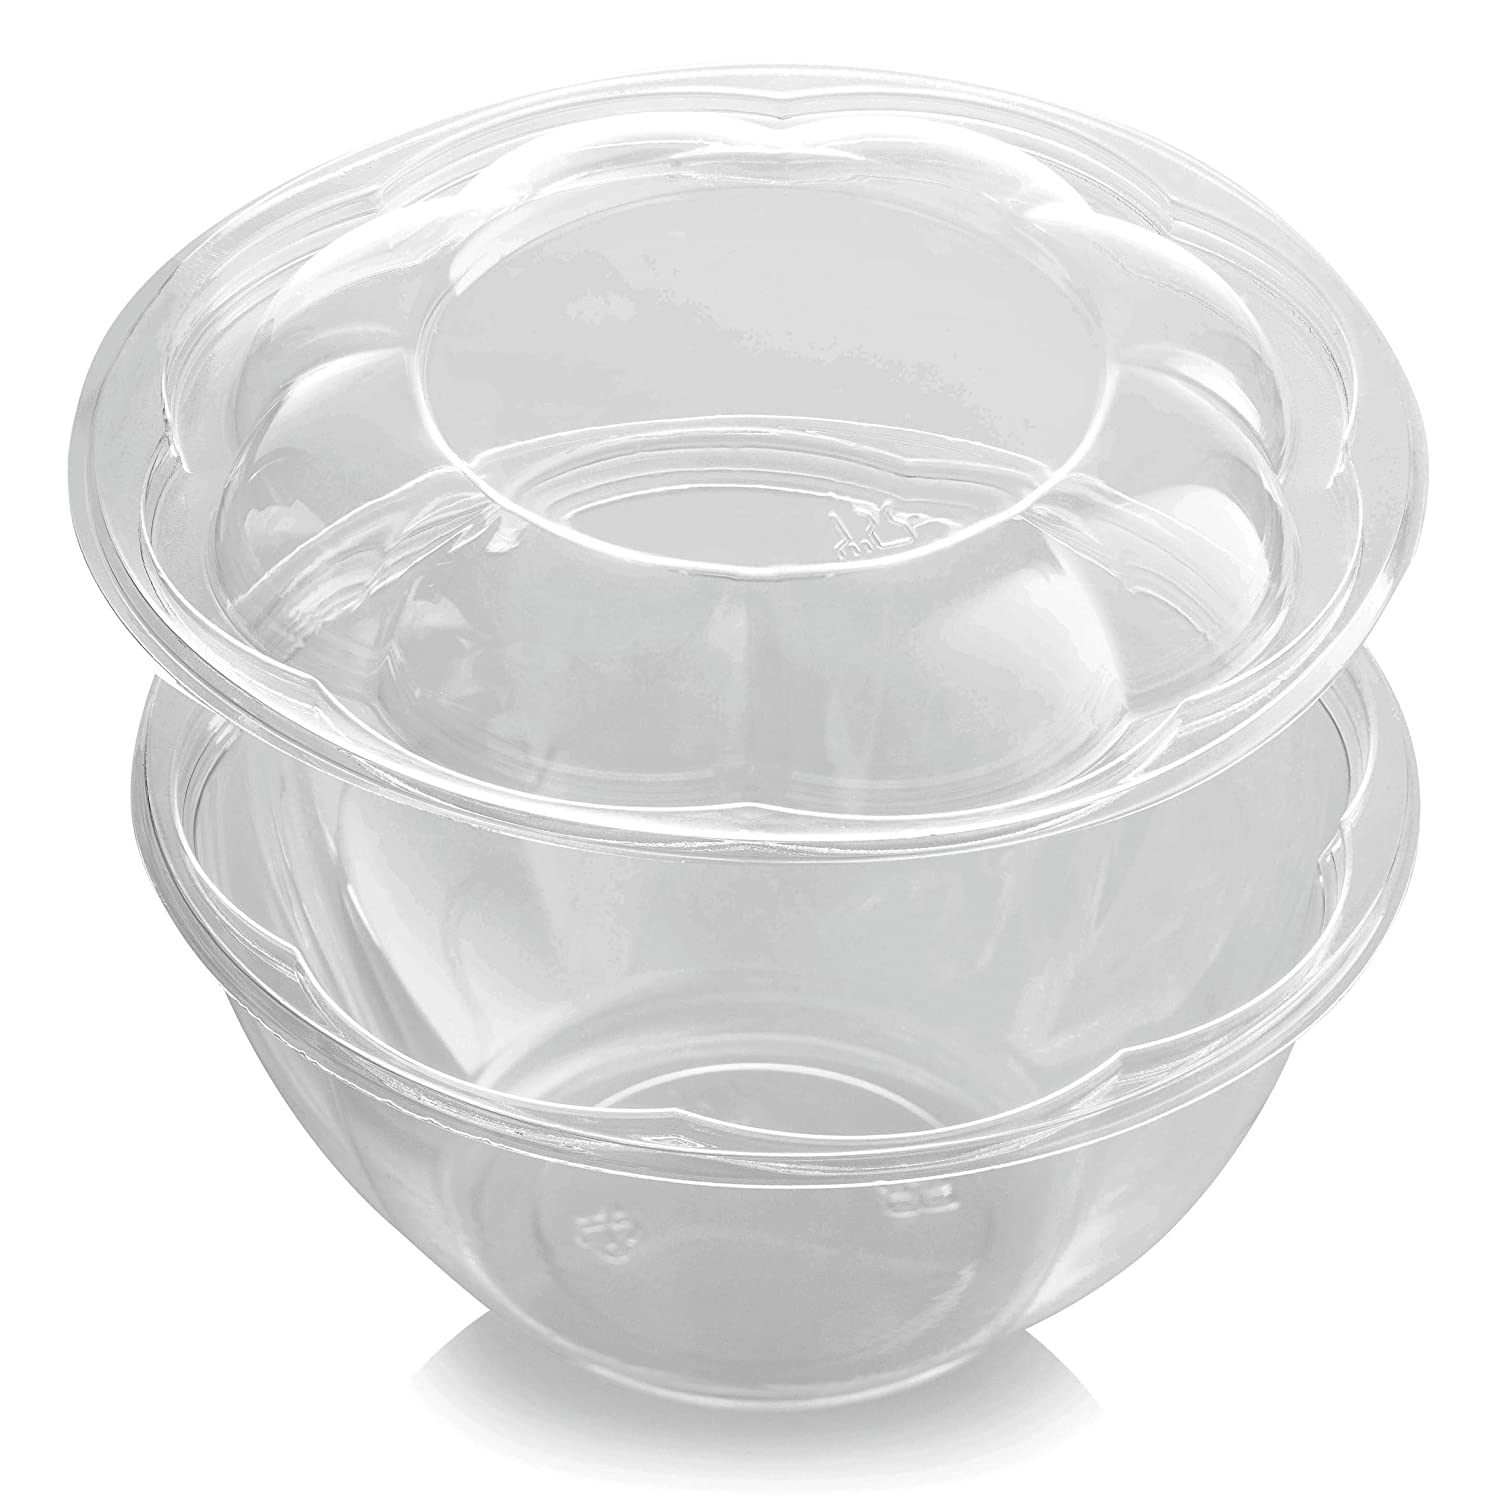 Food Storage Containers Mixing Bowl Glass Red Airtight Lids 24oz Lunch Set of 4